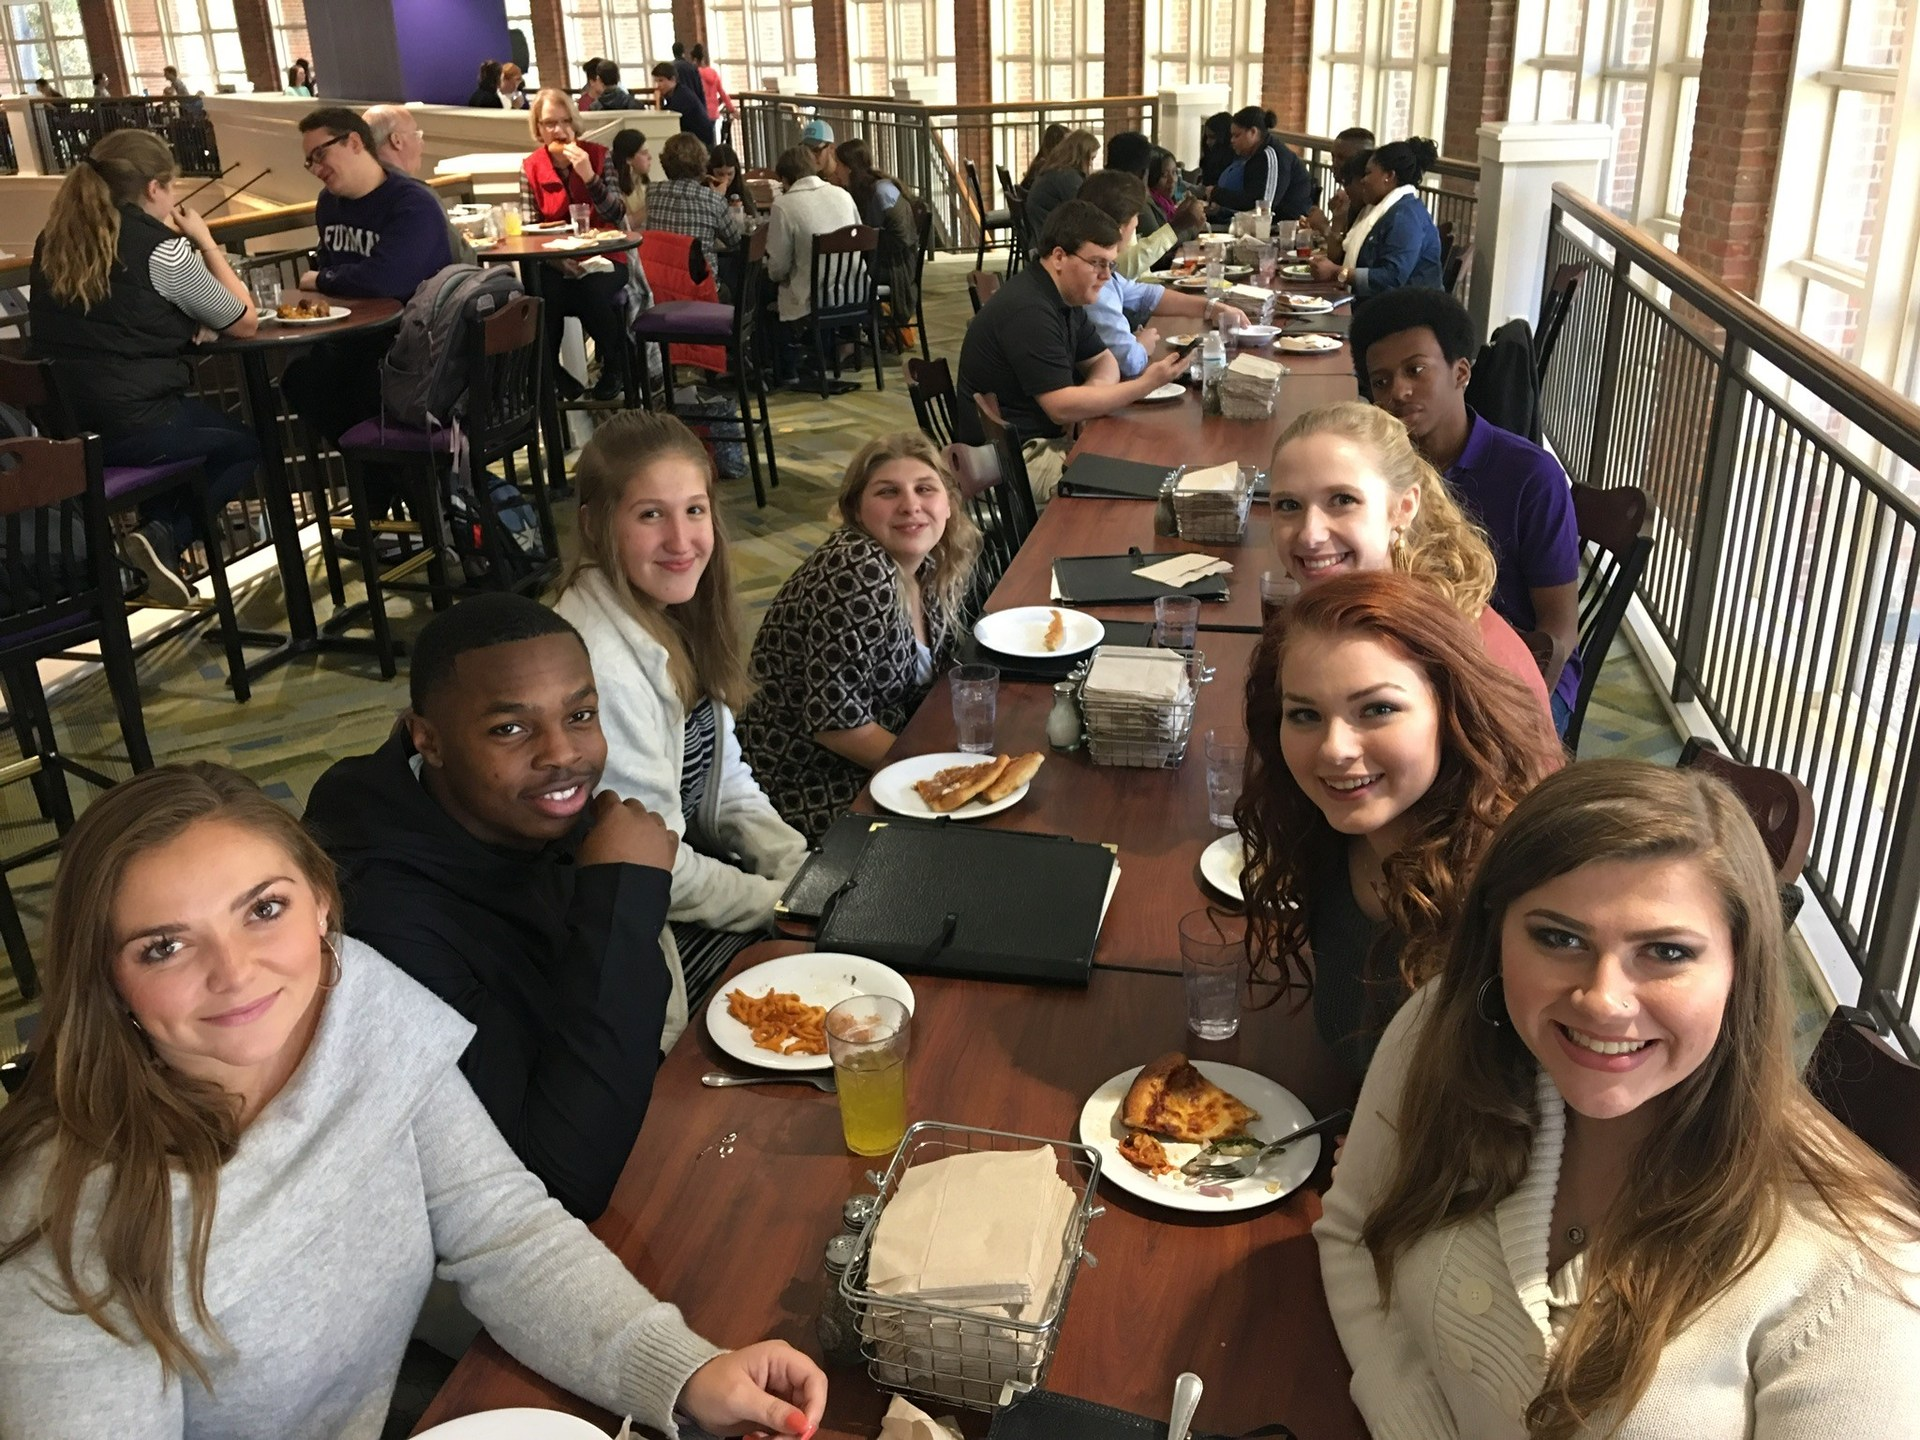 Lunch at Furman University